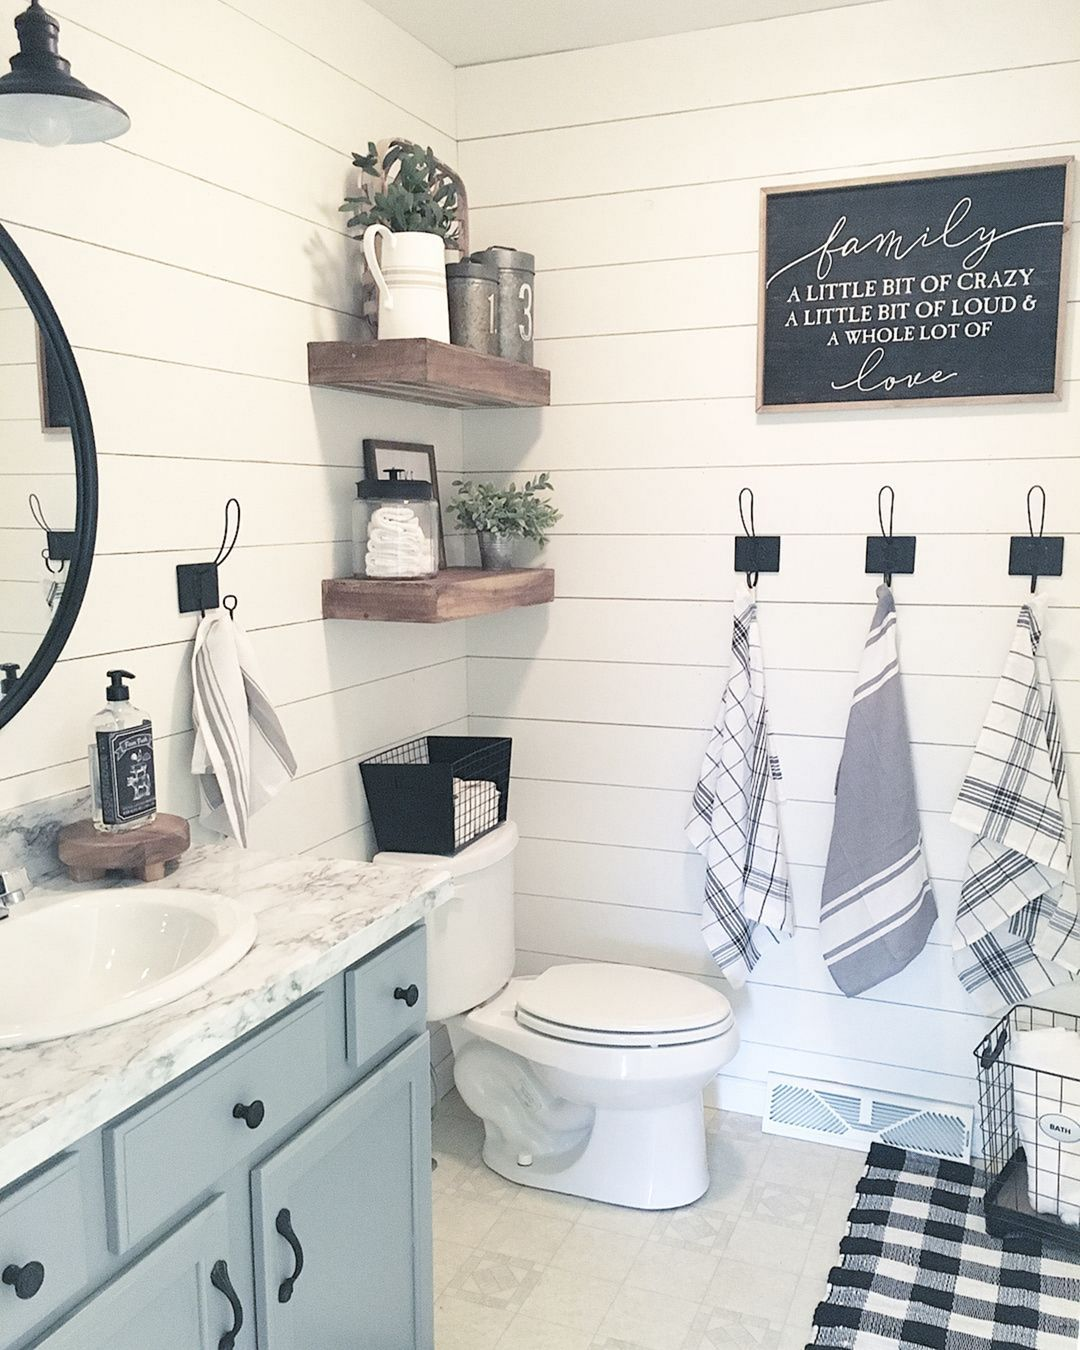 50 Amazing Christmas Bathroom Decorations That Will Amaze You